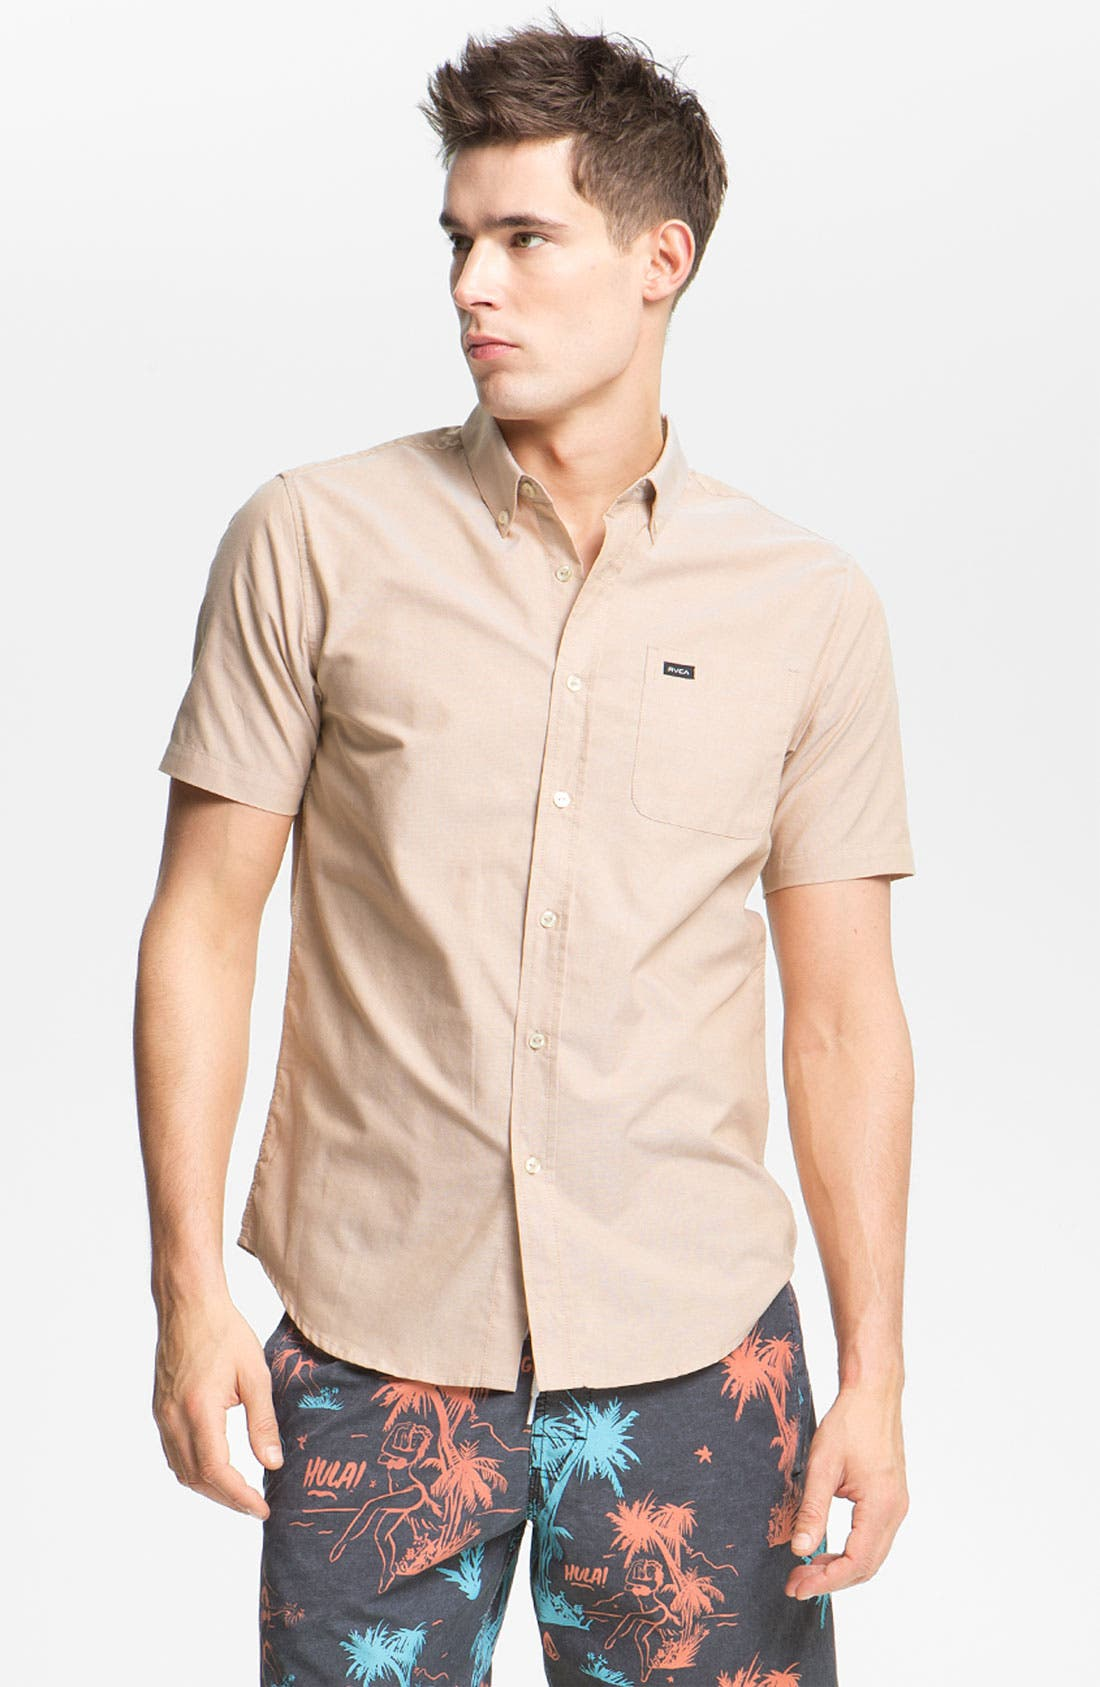 Alternate Image 1 Selected - RVCA 'That'll Do' Short Sleeve Oxford Shirt